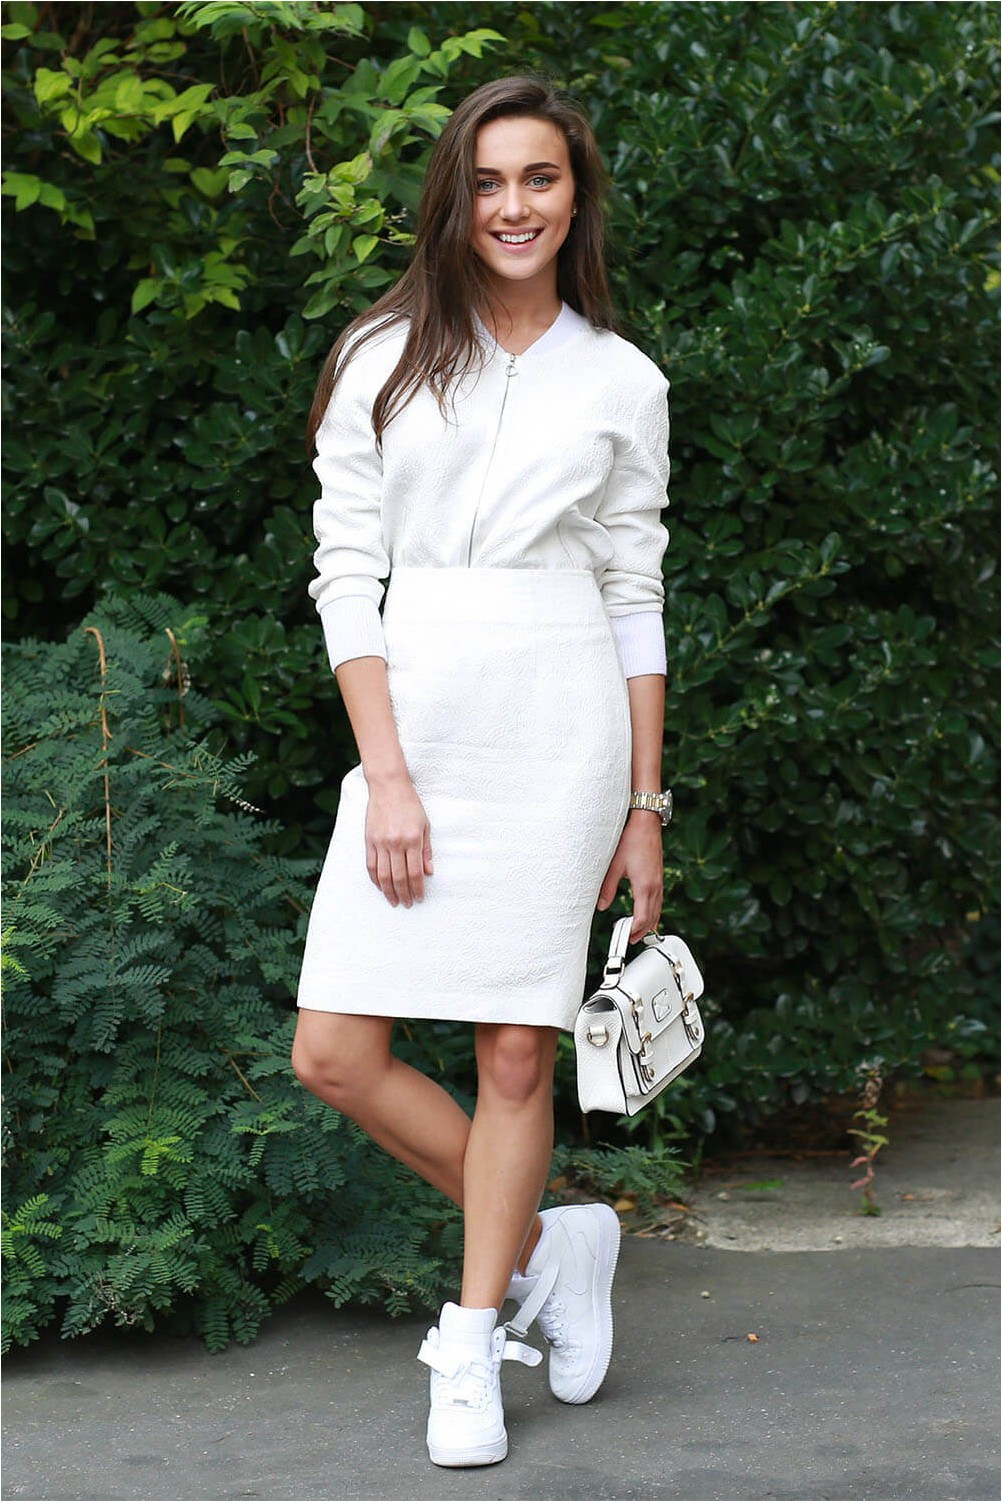 Pencil skirt with athletic shoes